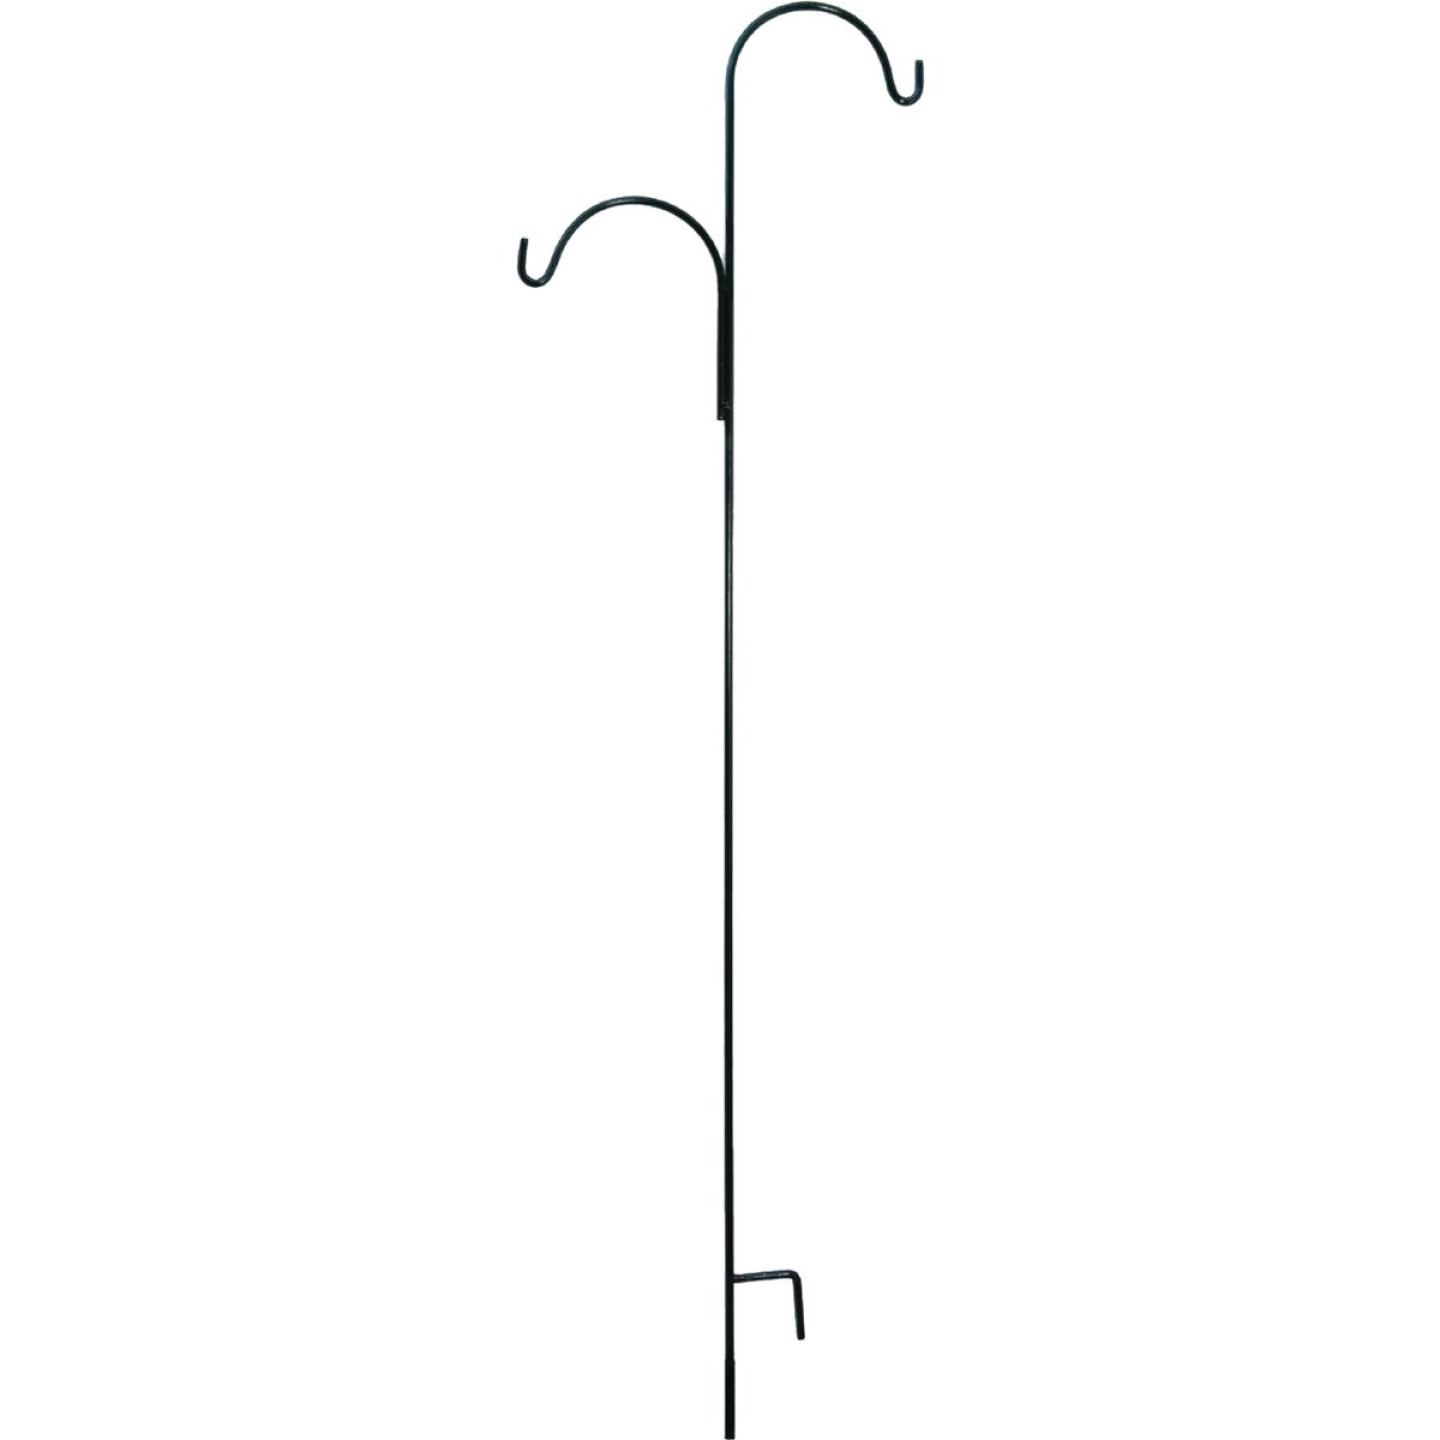 American Gardenworks 91 In. Black Steel Offset Double Hanger Shepherd Hook Image 1